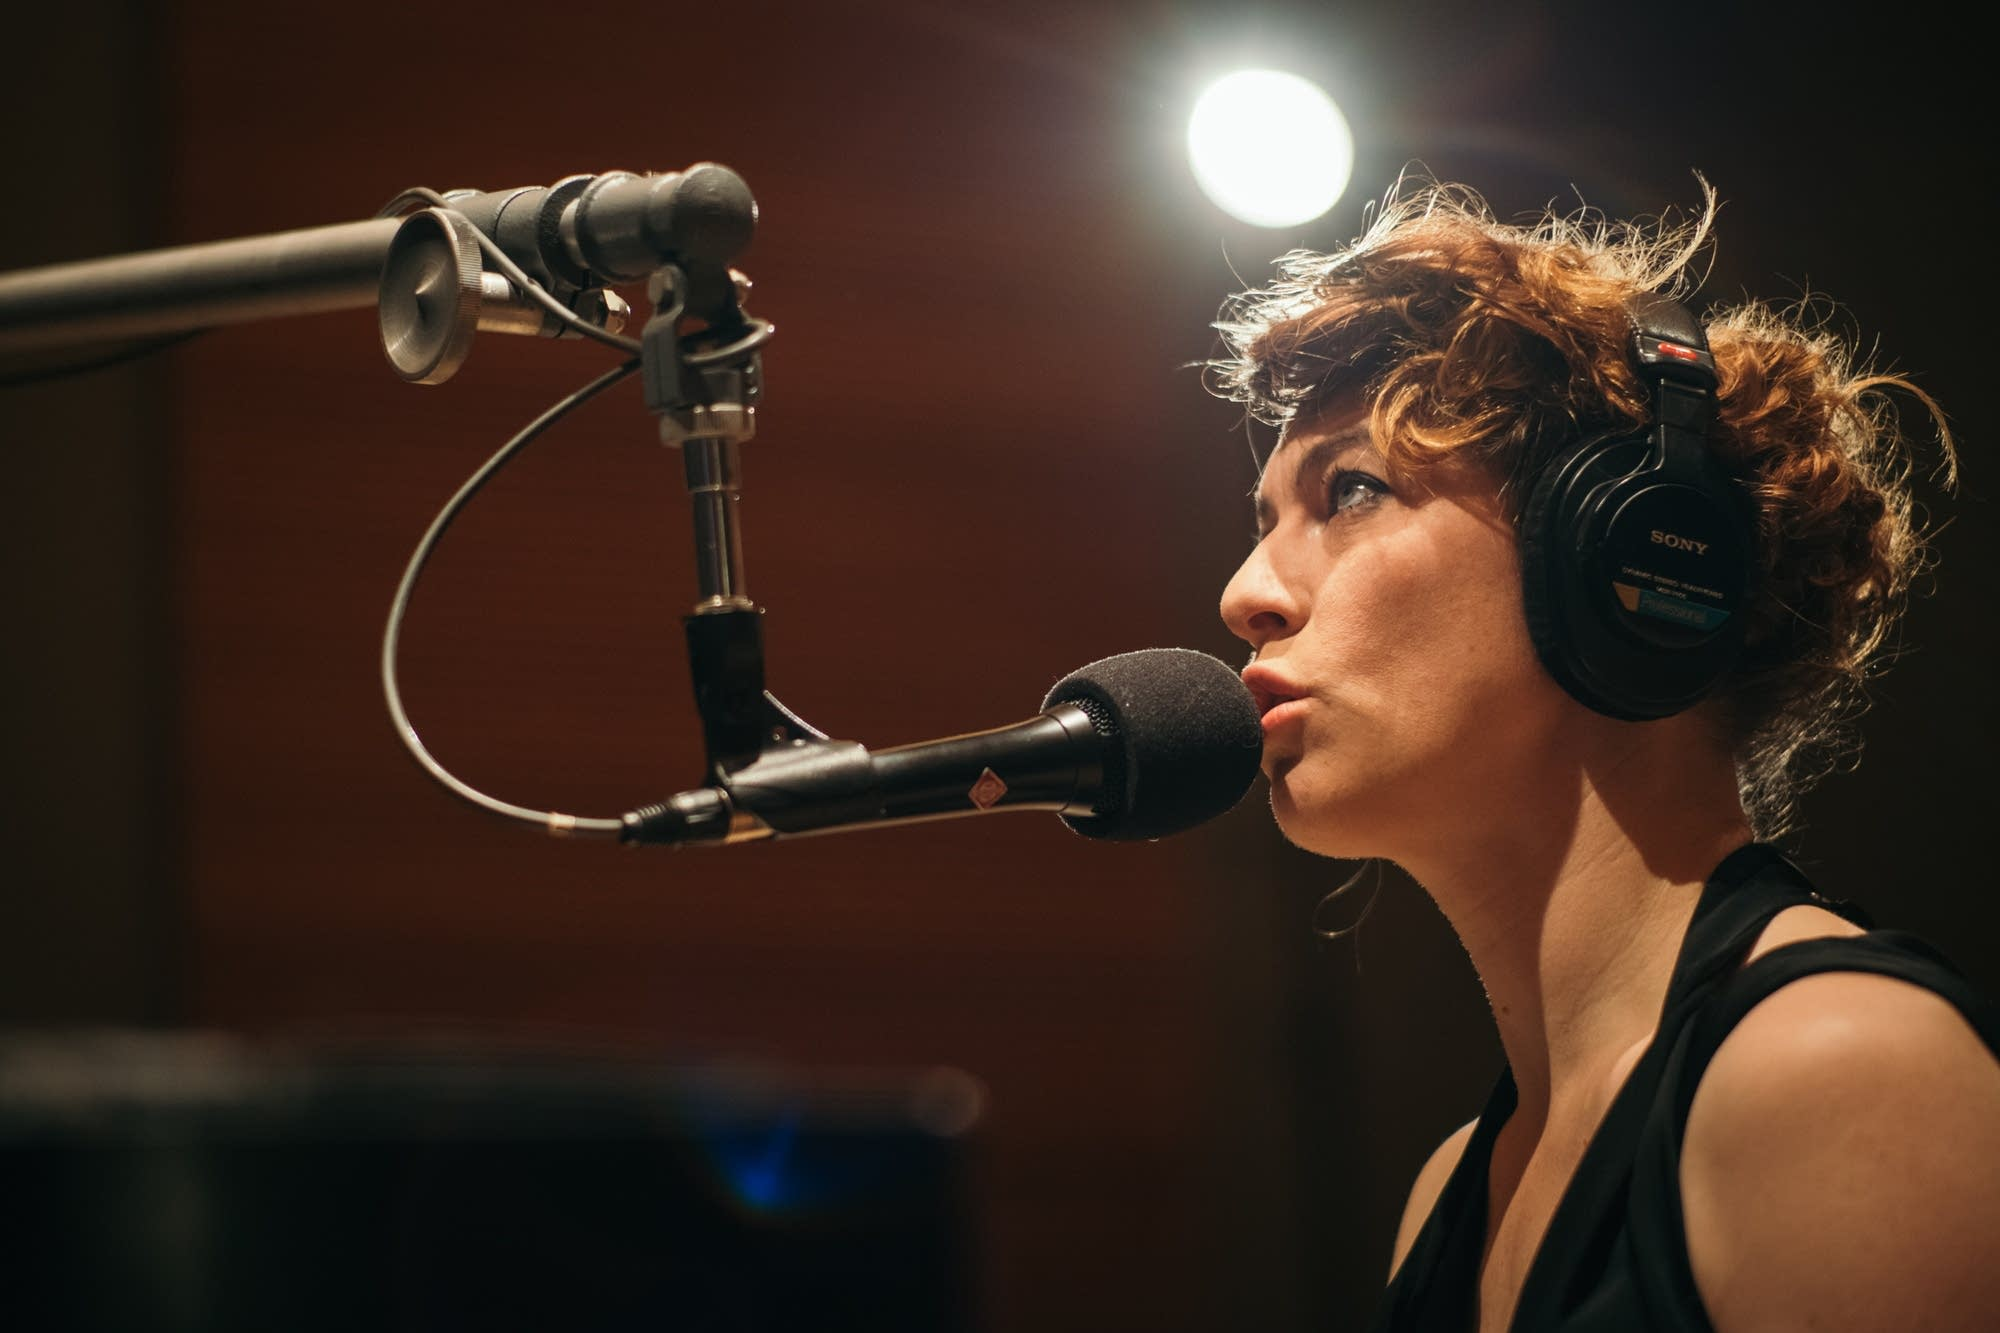 Amanda Palmer performs in The Current studio